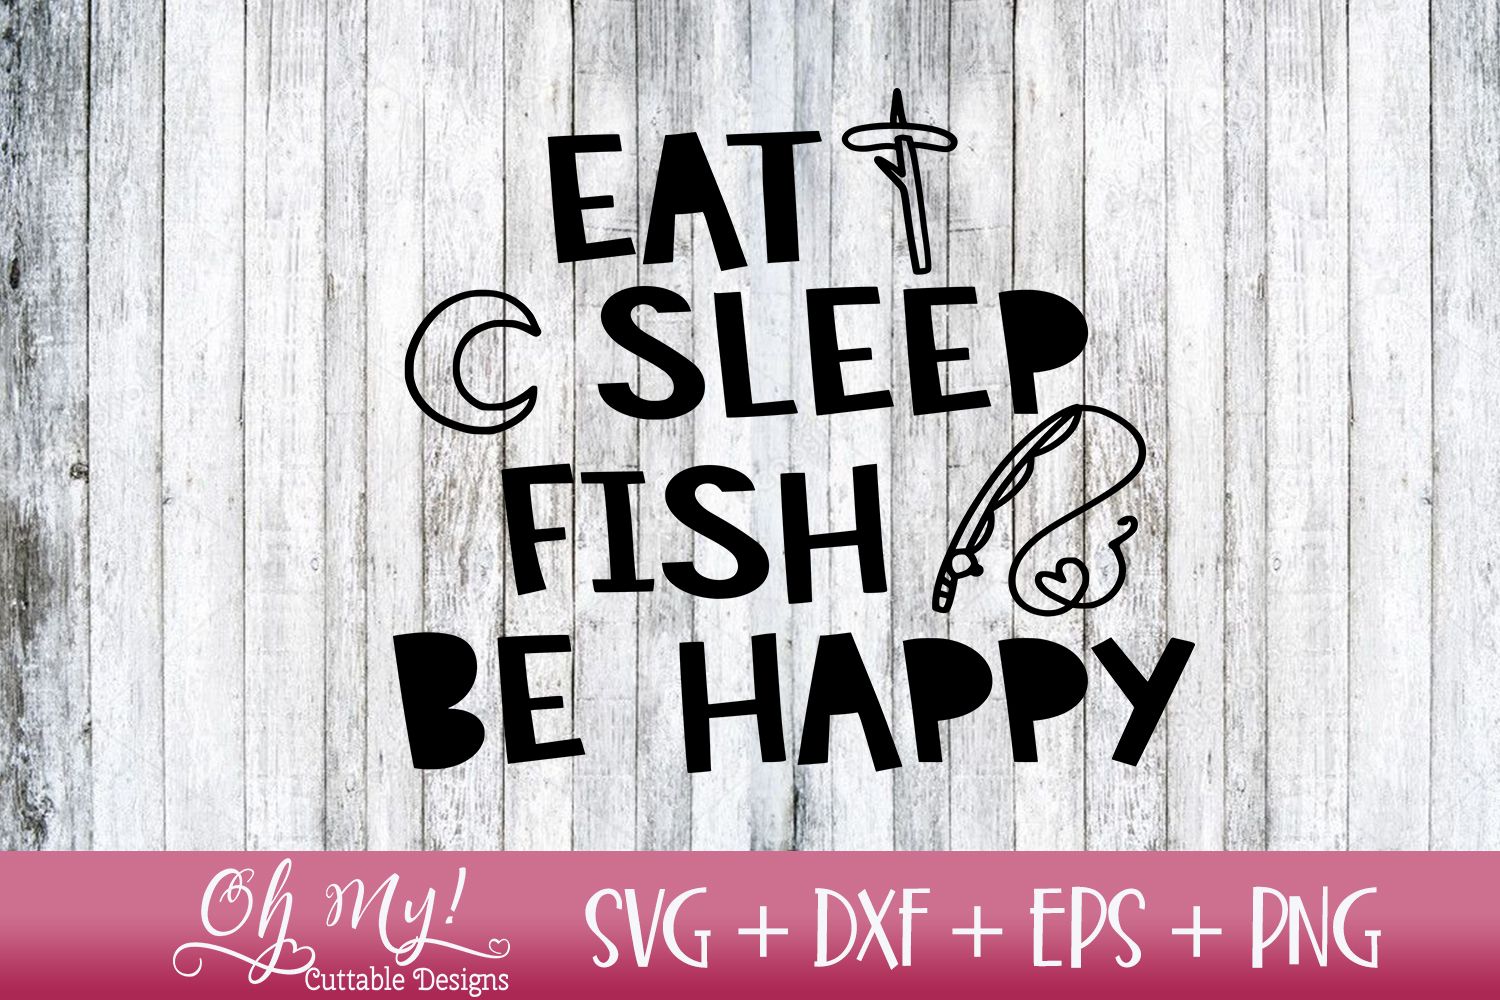 Eat Sleep Fish Be Happy - SVG DXF EPS PNG example image 1